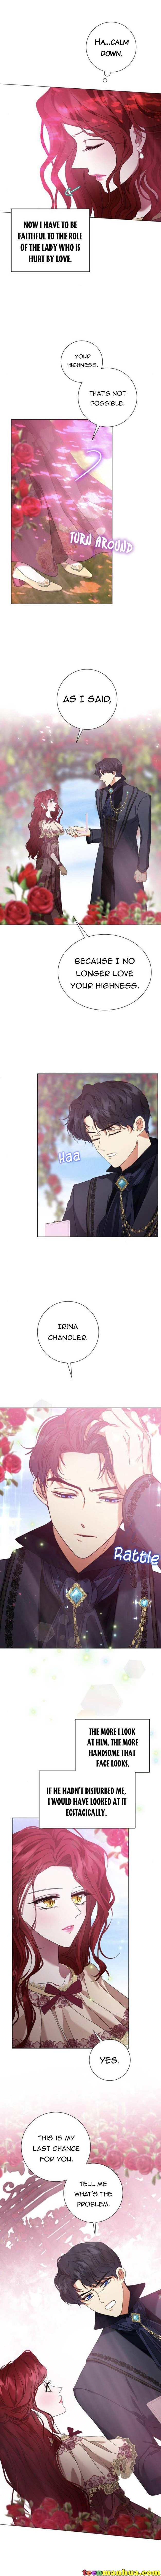 Circumstances of Changing Bodies - chapter 12 - #2